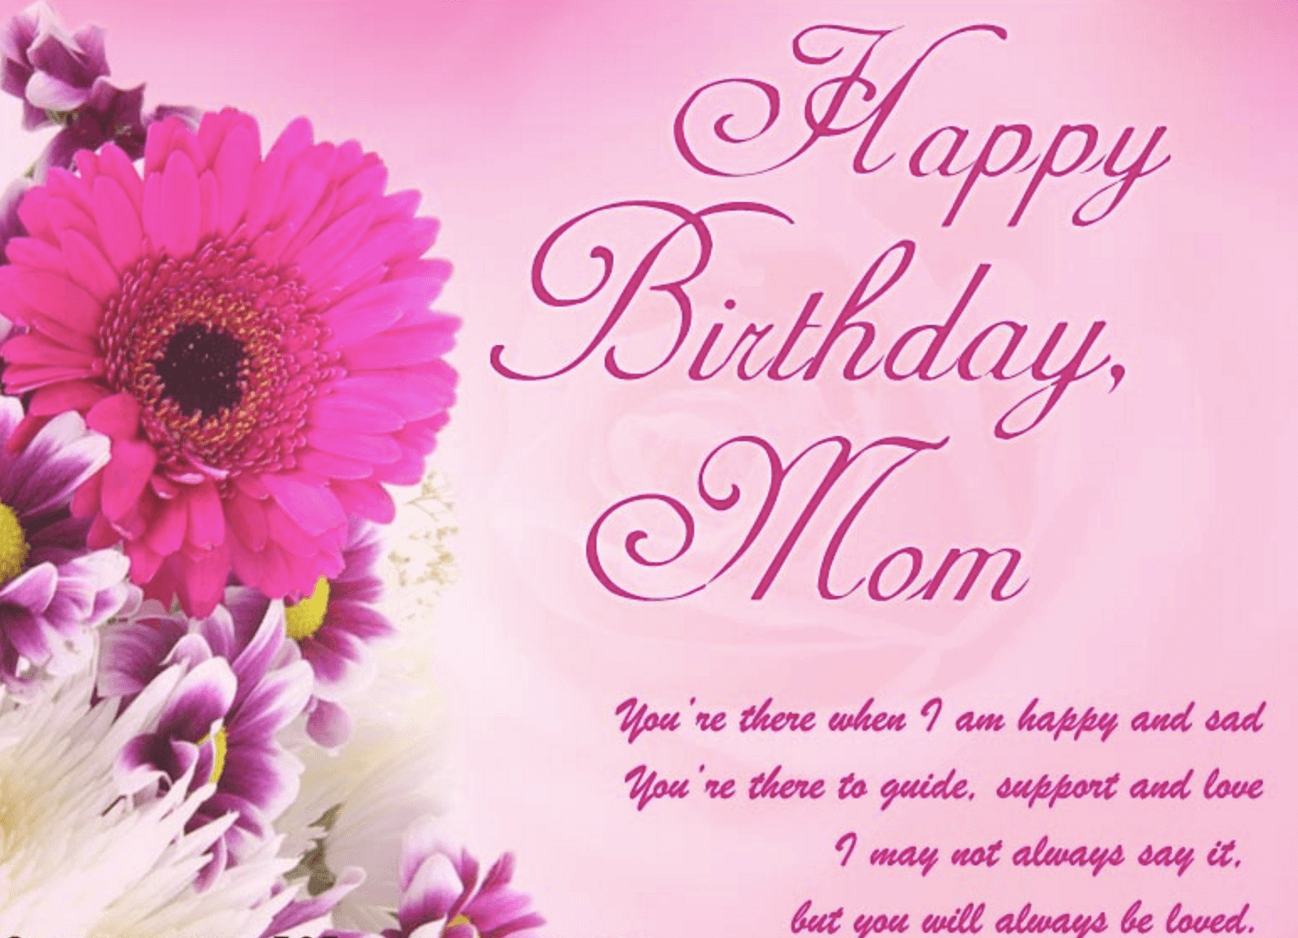 Birthday Cards for Mom Bday Messages Birthday wishes for